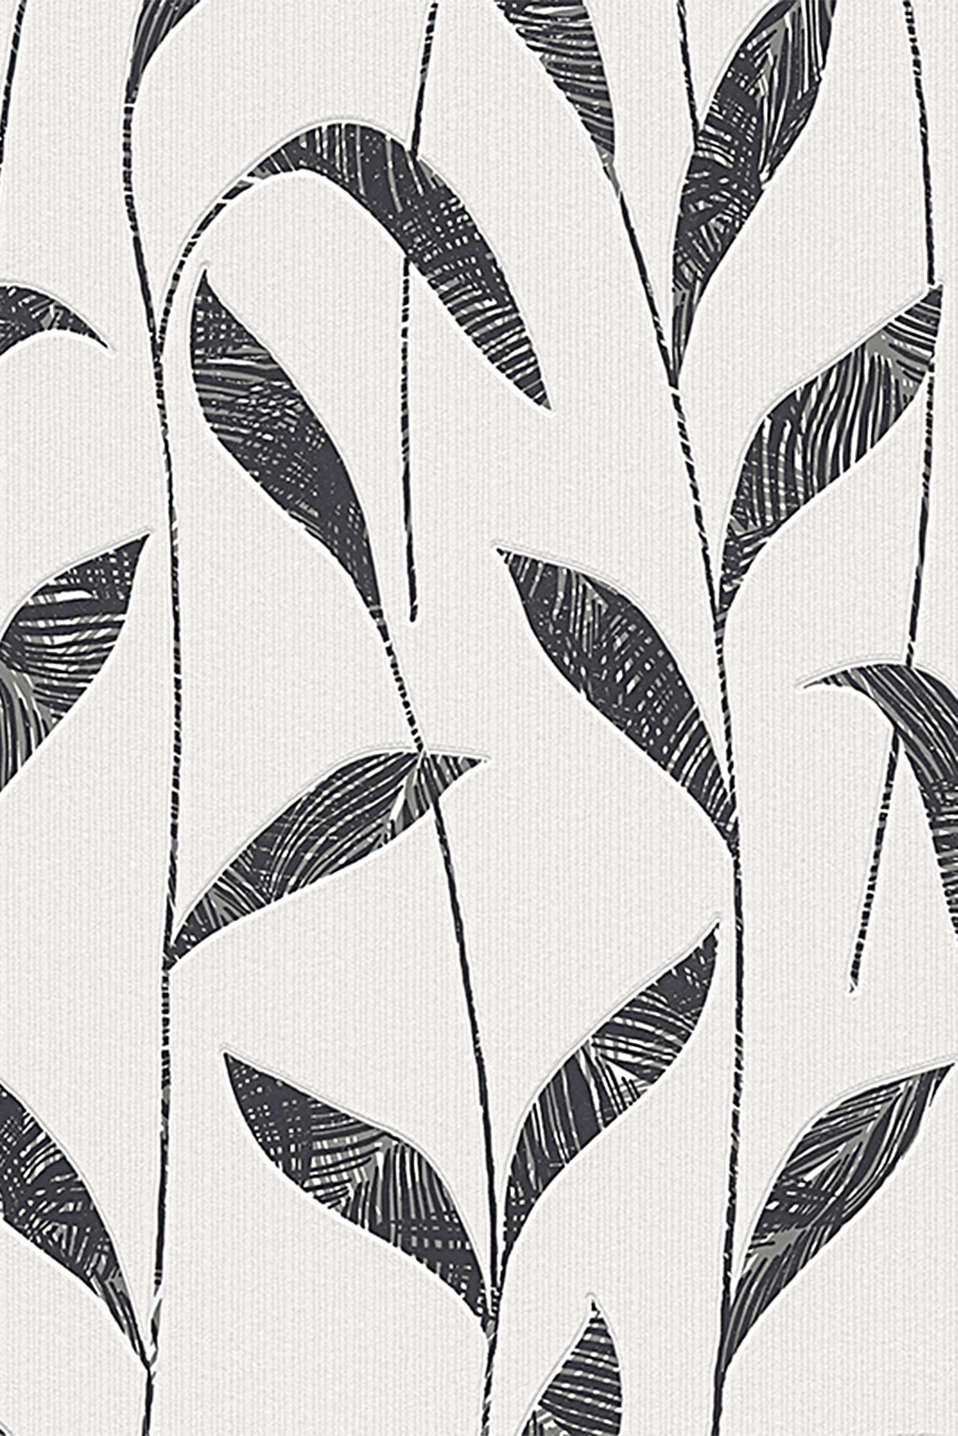 With a black-and-white leaf print